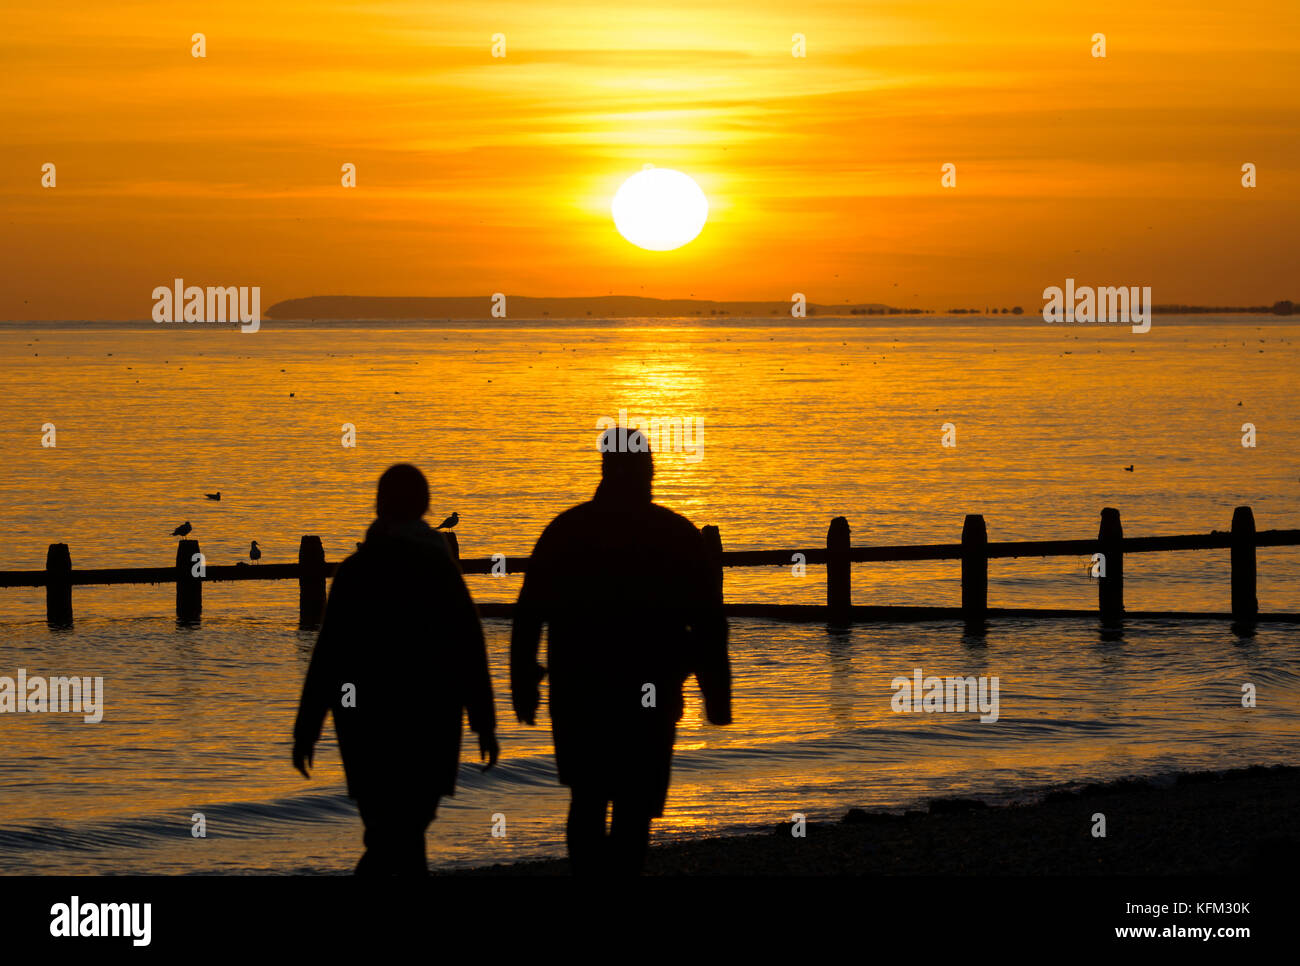 A couple walking on the beach as the sun goes down over the sea in Autumn in the UK. - Stock Image